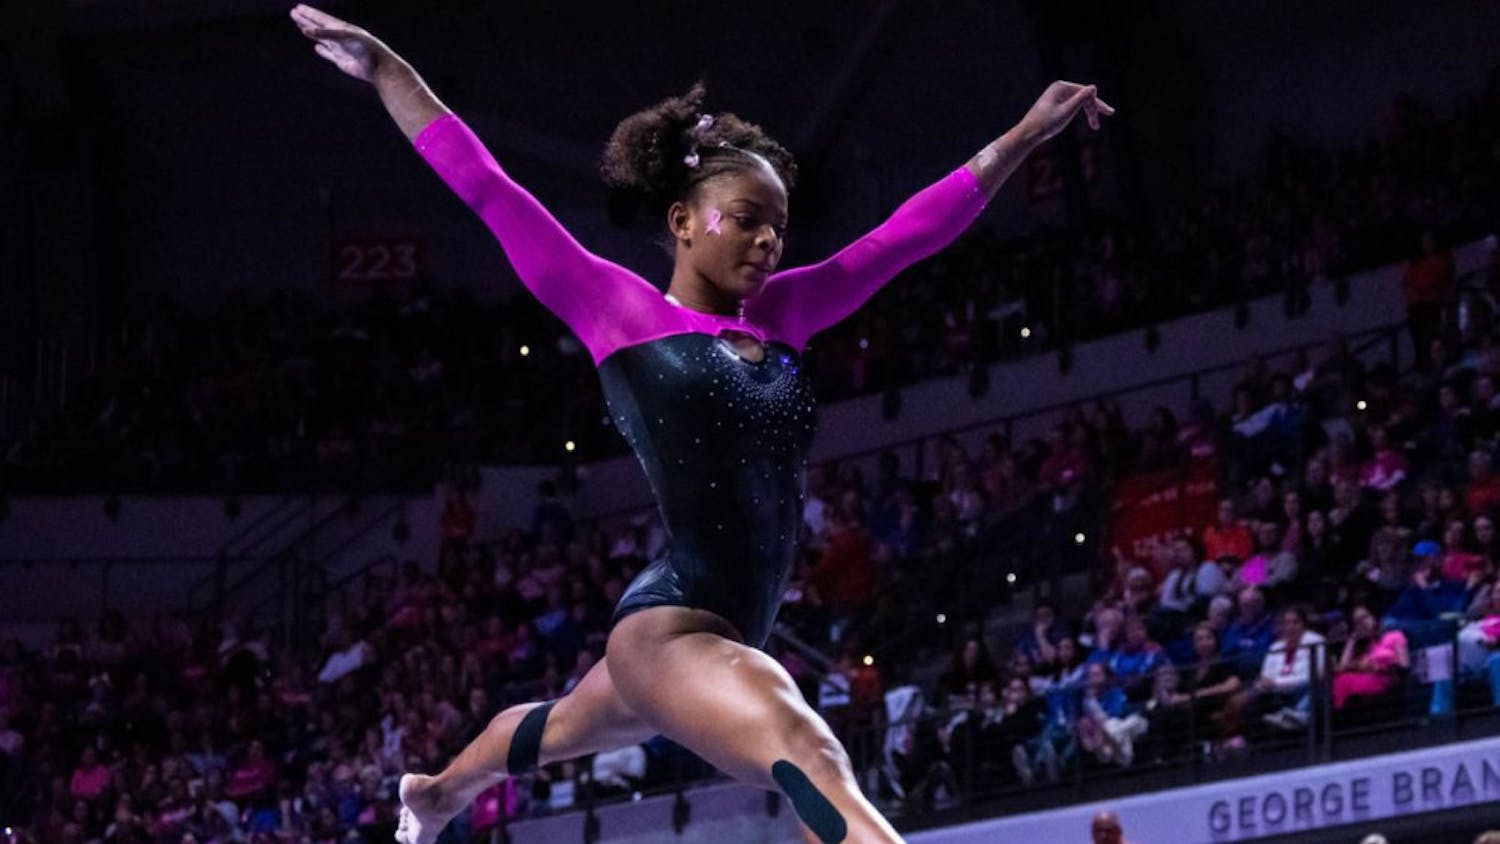 The team is led by junior standout Trinity Thomas, pictured above. She  was a finalist for the Honda Award, which is given to the best collegiate gymnast in the country.